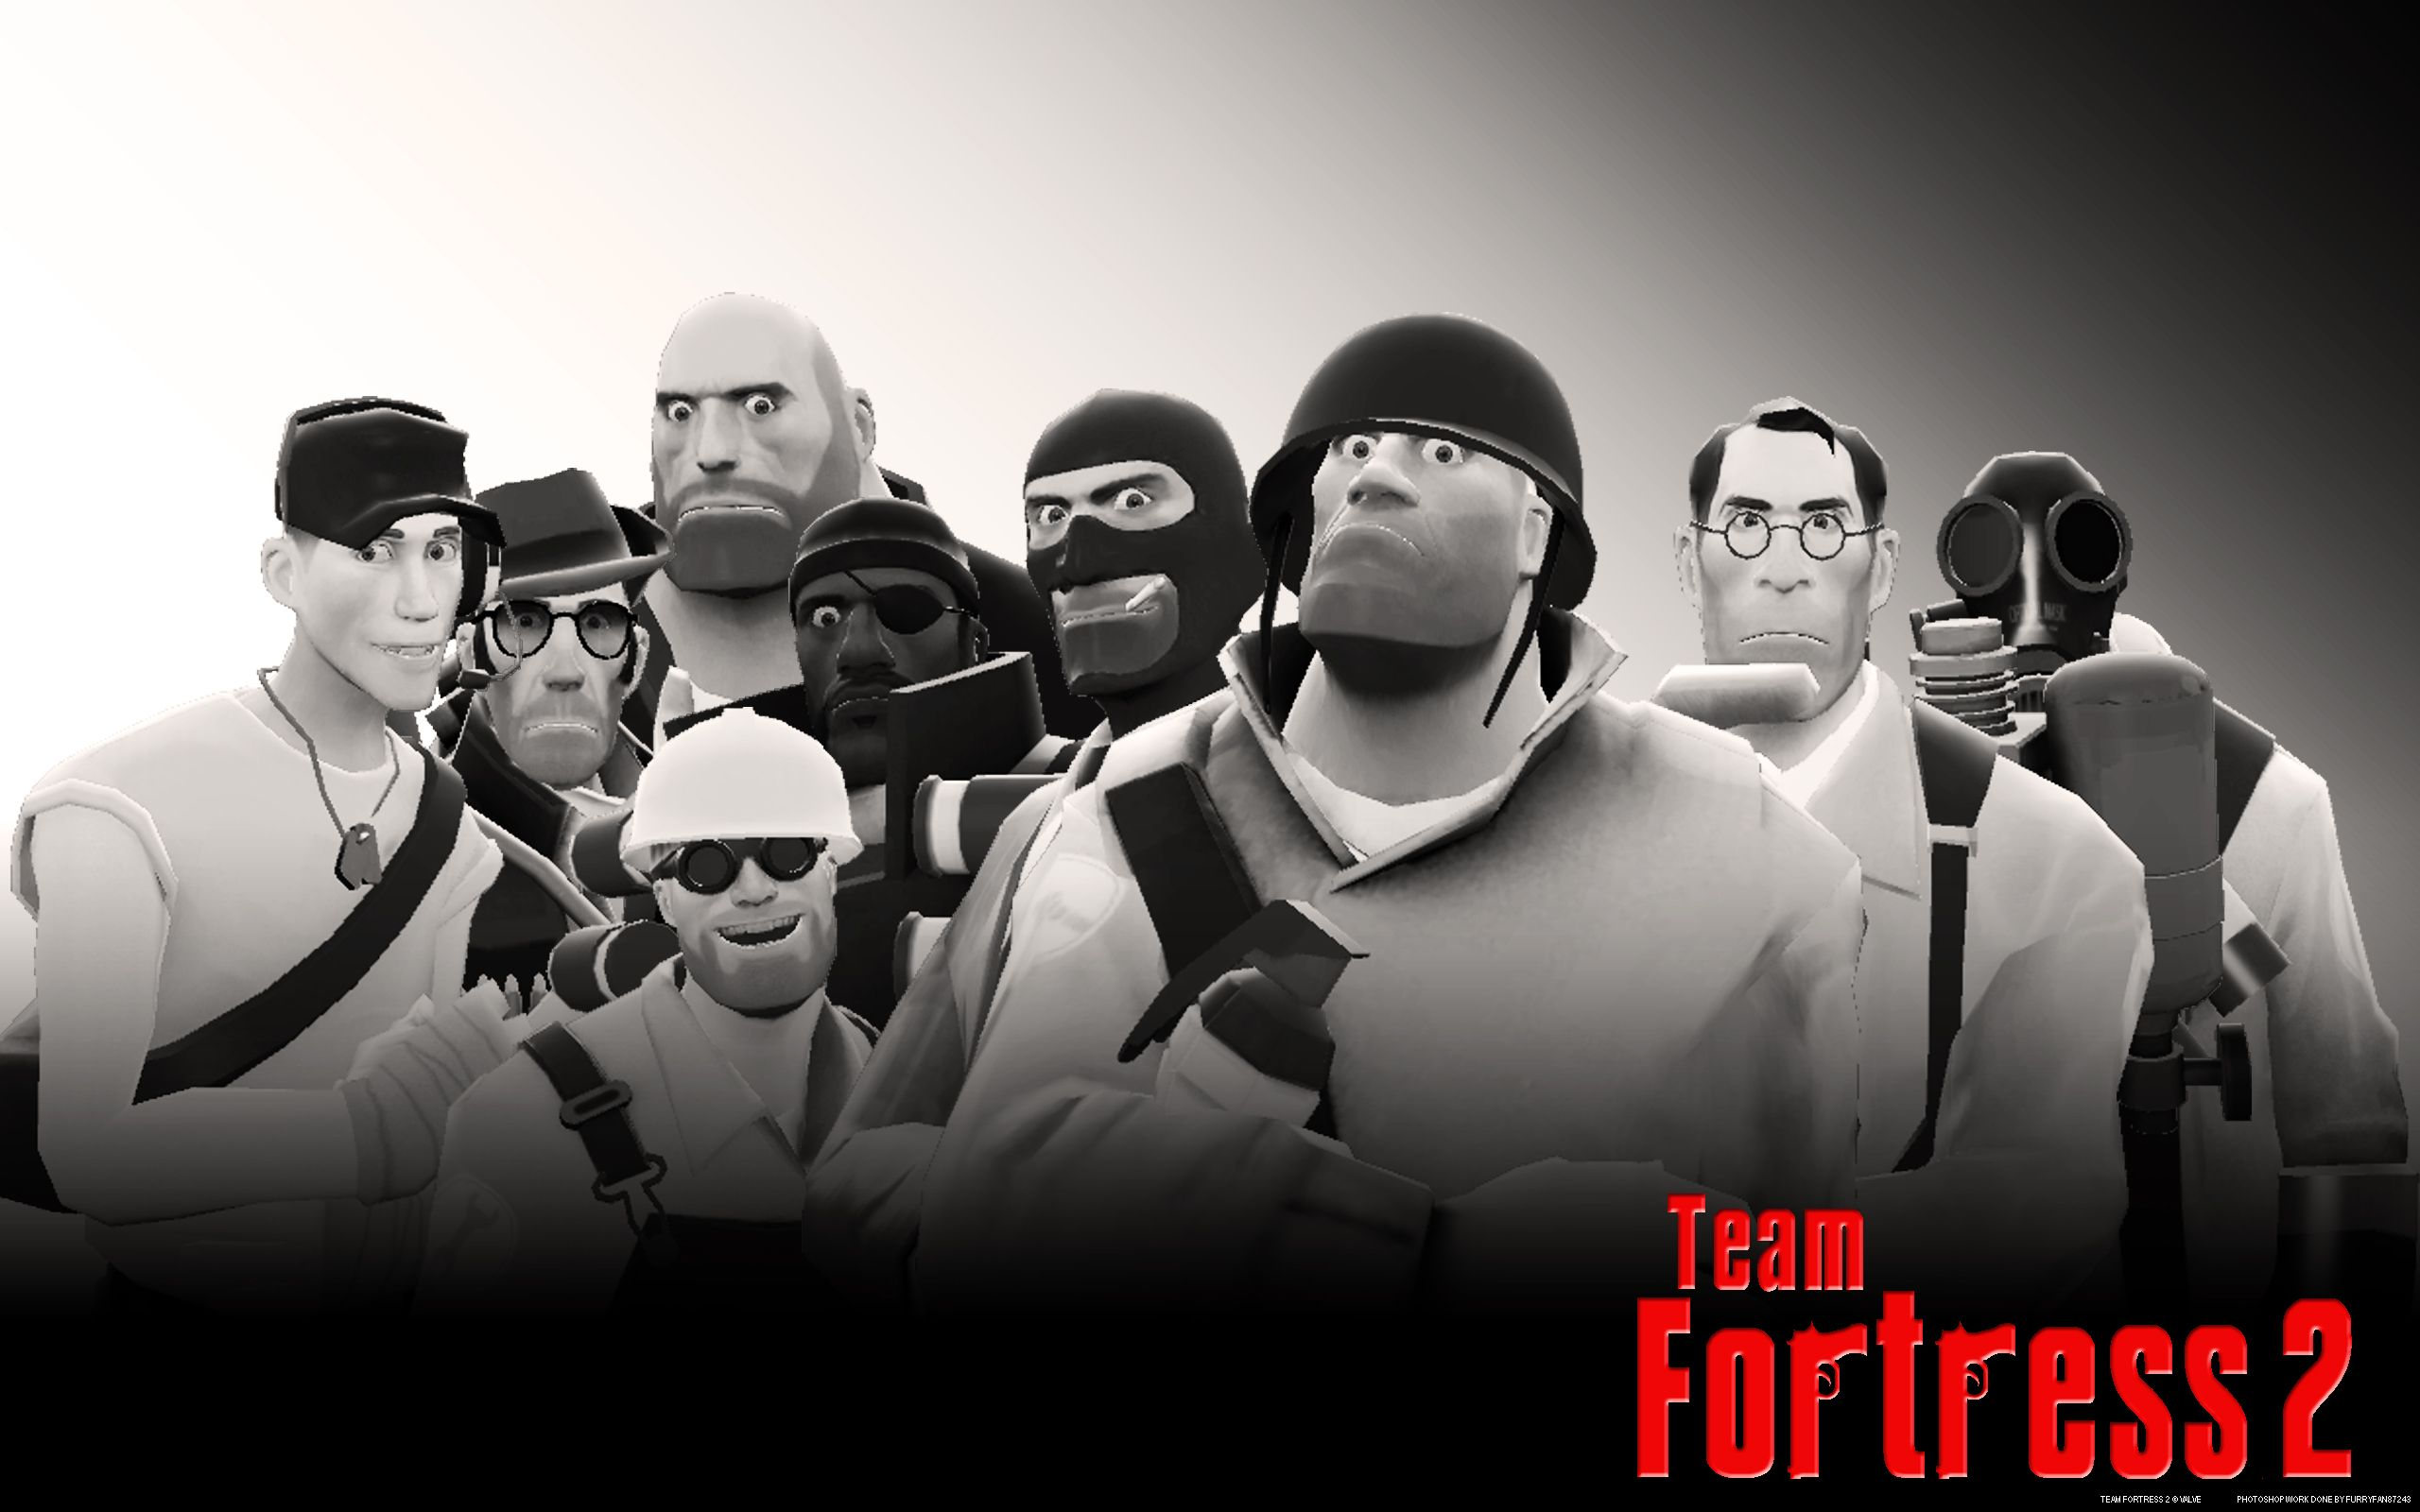 Pyro tf2 wallpaper 1920x1080 pyro tf2 scout tf2 team fortress 2 - The 25 Best Team Fortress Wiki Ideas On Pinterest Team Fortress 2 Game Fortress Game And Team Fortress 1